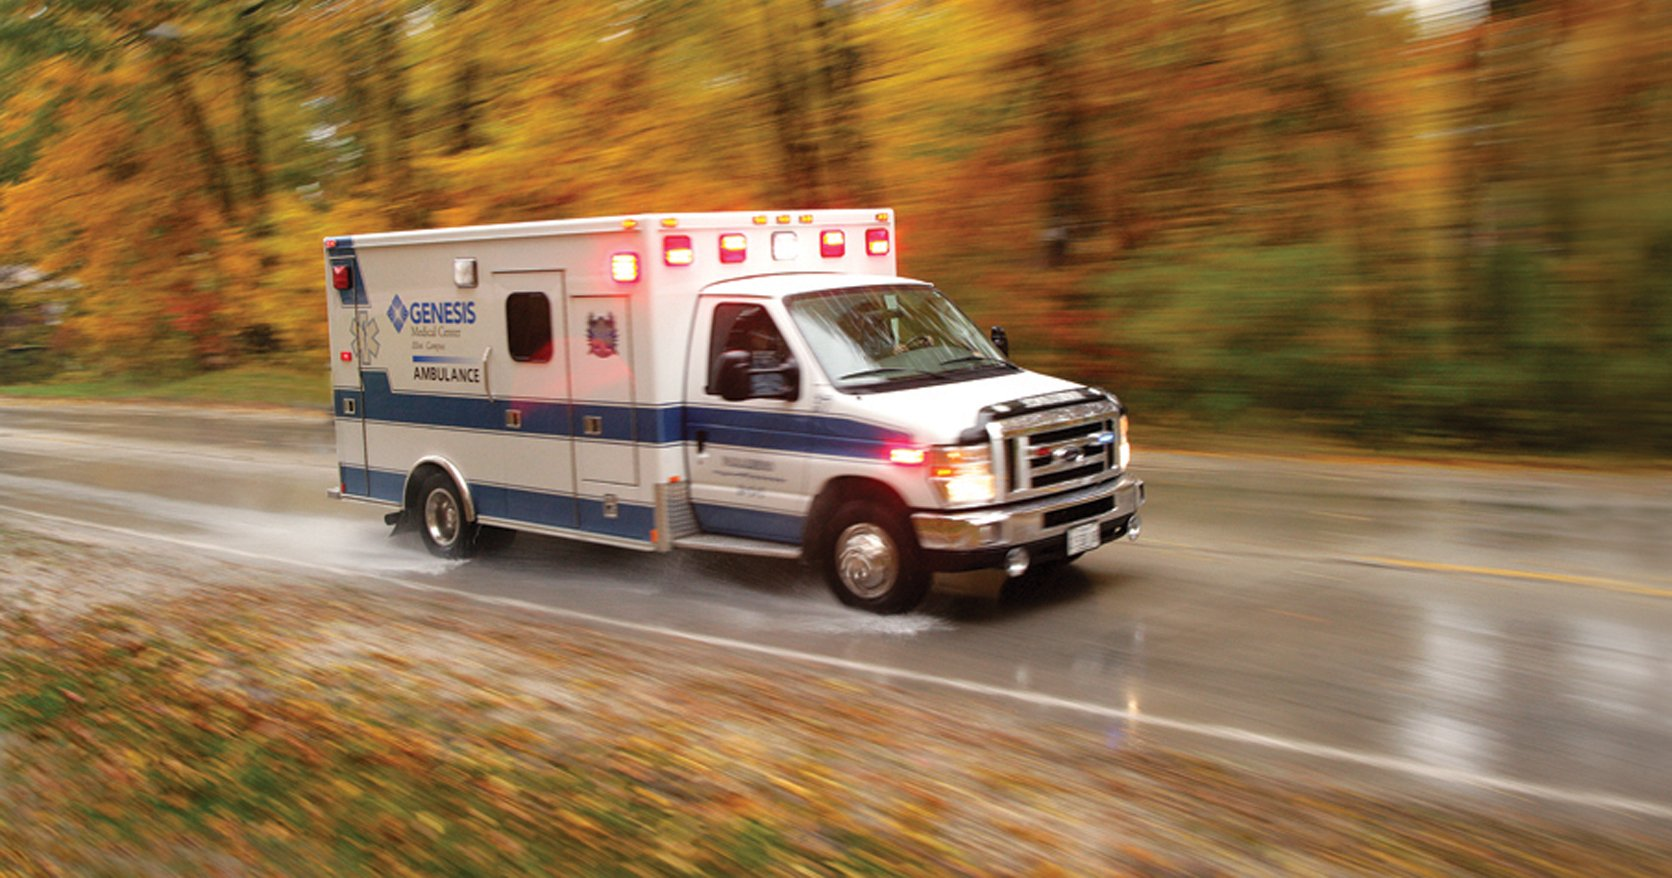 Ambulance Images genesis ambulance services - genesis health system